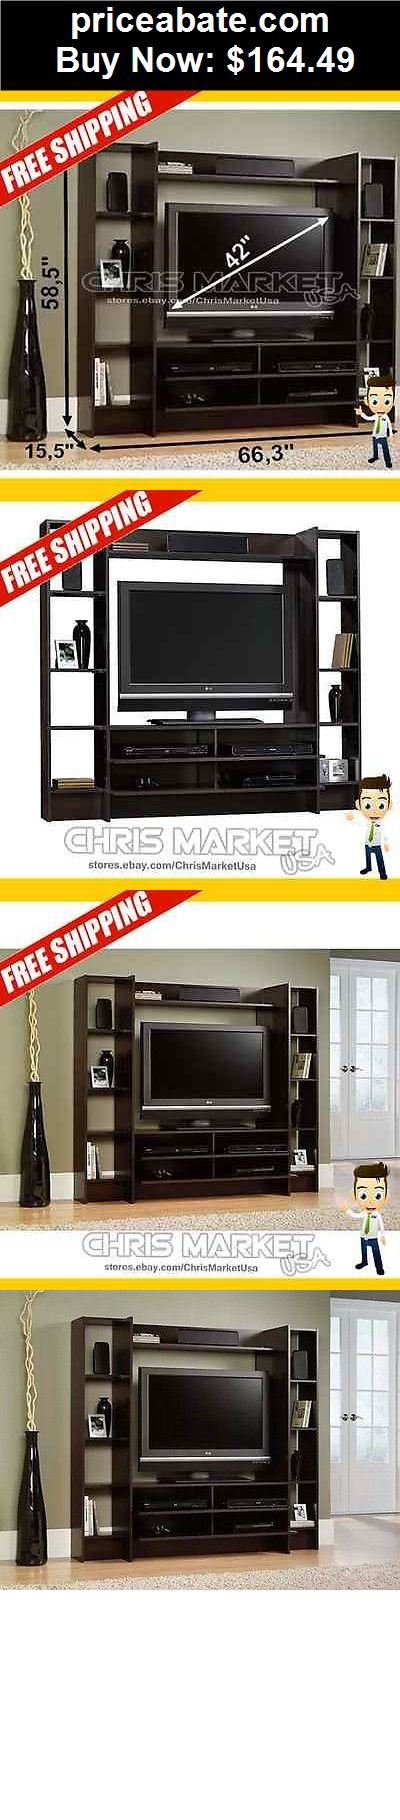 Furniture: Cherry Home Entertainment Furniture Cabinet TV Stand Center Wood Storage  - BUY IT NOW ONLY $164.49